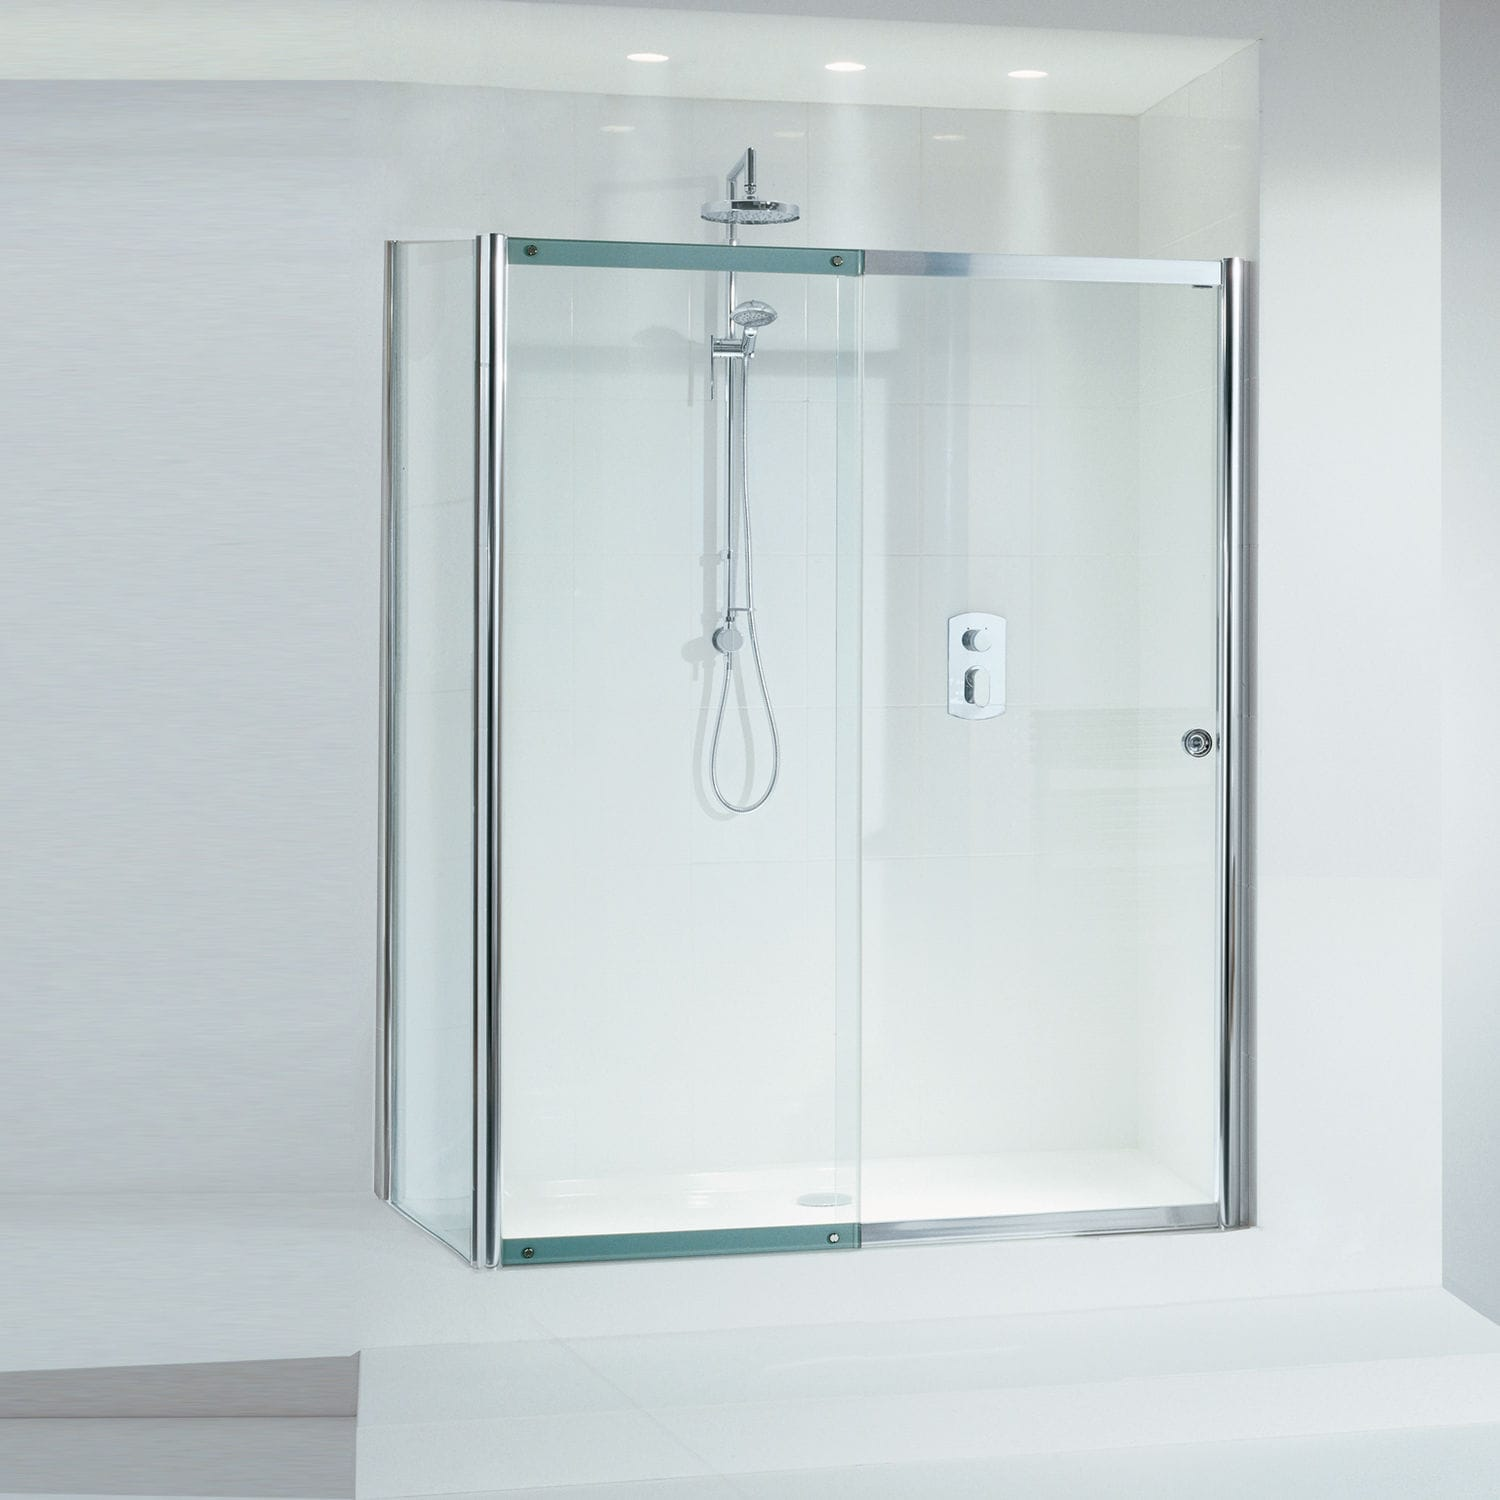 Sliding shower screen / corner - NSS:NSC - matki showering